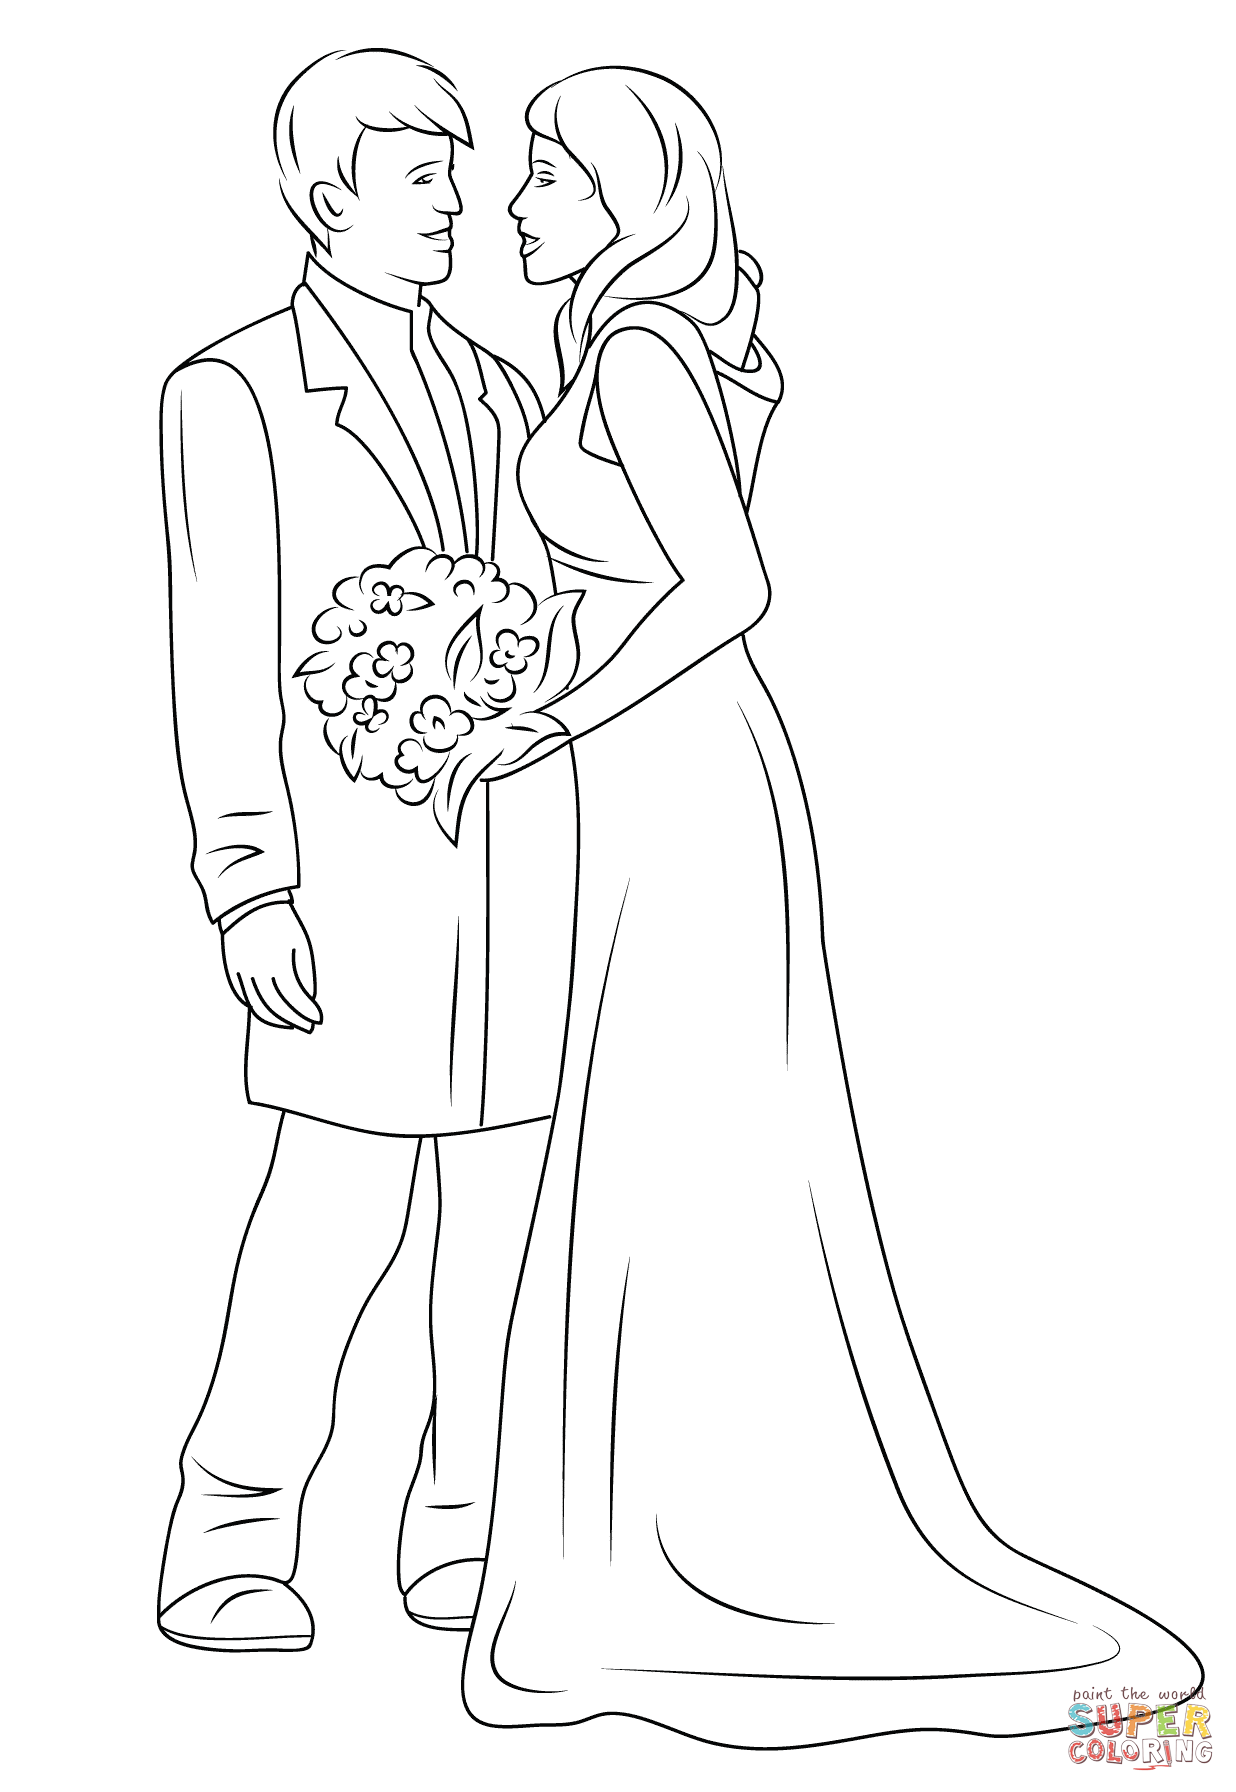 chibi couple coloring pages anime wallpaper hd anime couples kissing coloring pages chibi pages couple coloring